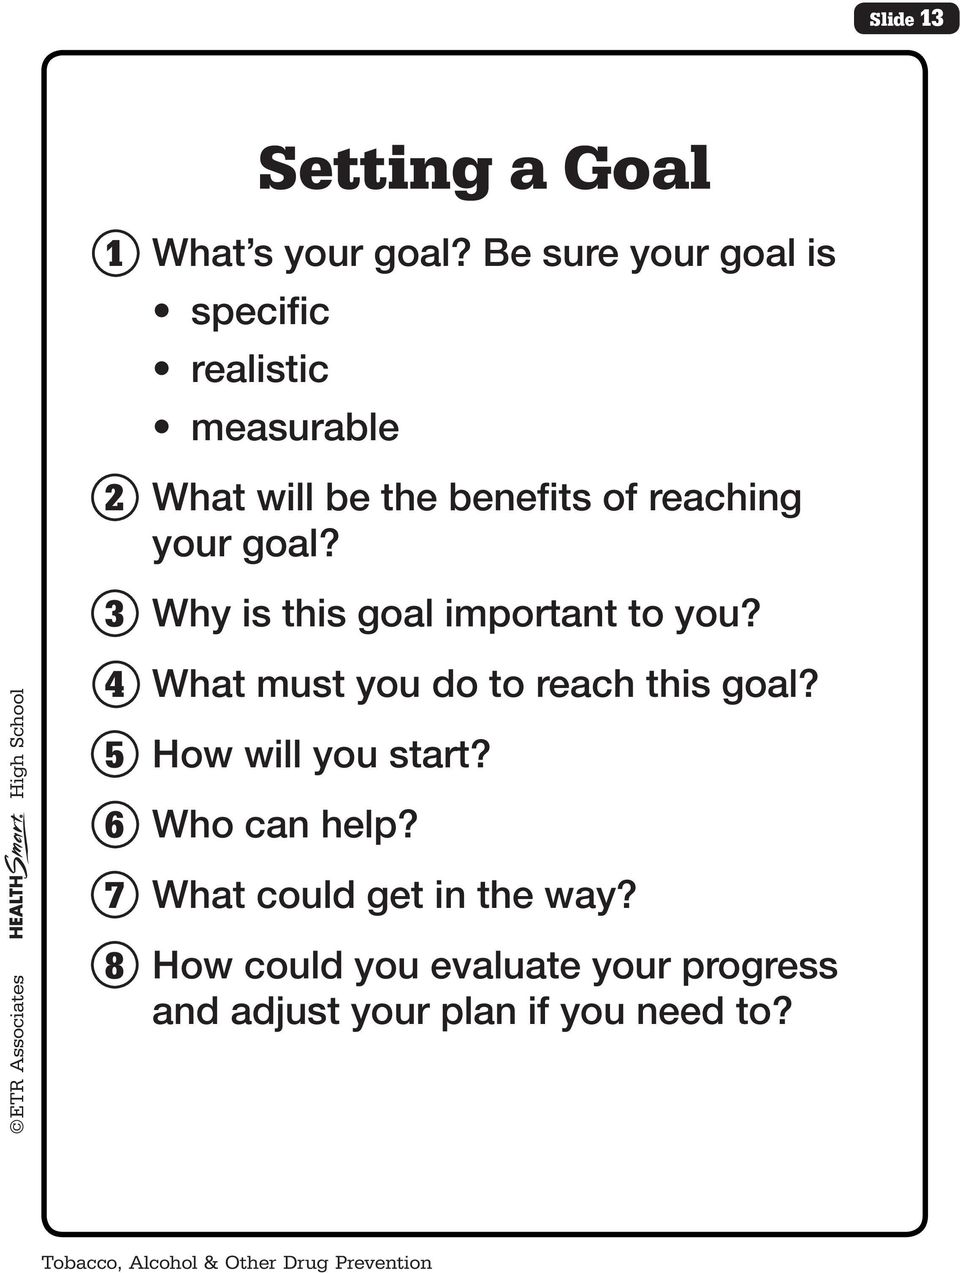 3 Why is this goal important to you? 4 What must you do to reach this goal? 5 How will you start?